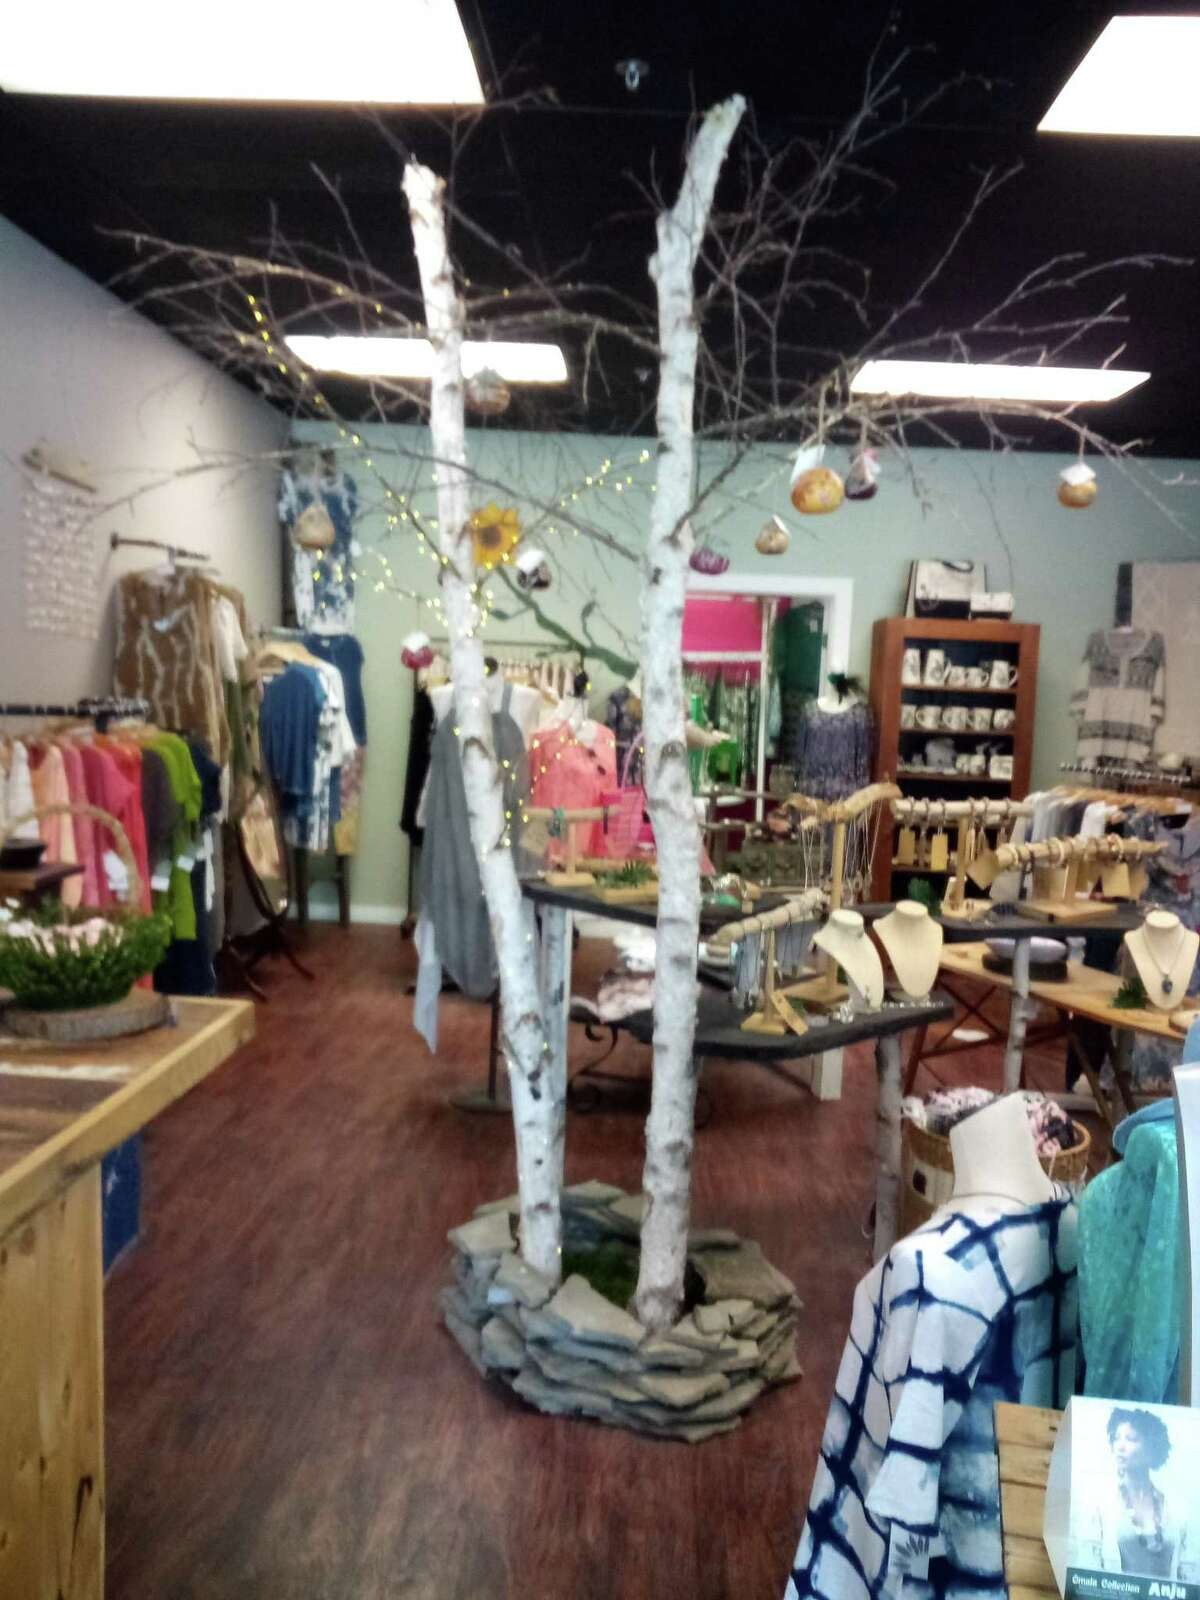 LIVe, a clothing and gift store on Main Street in Winsted, is owned by Jackie McNamara of Torrington.